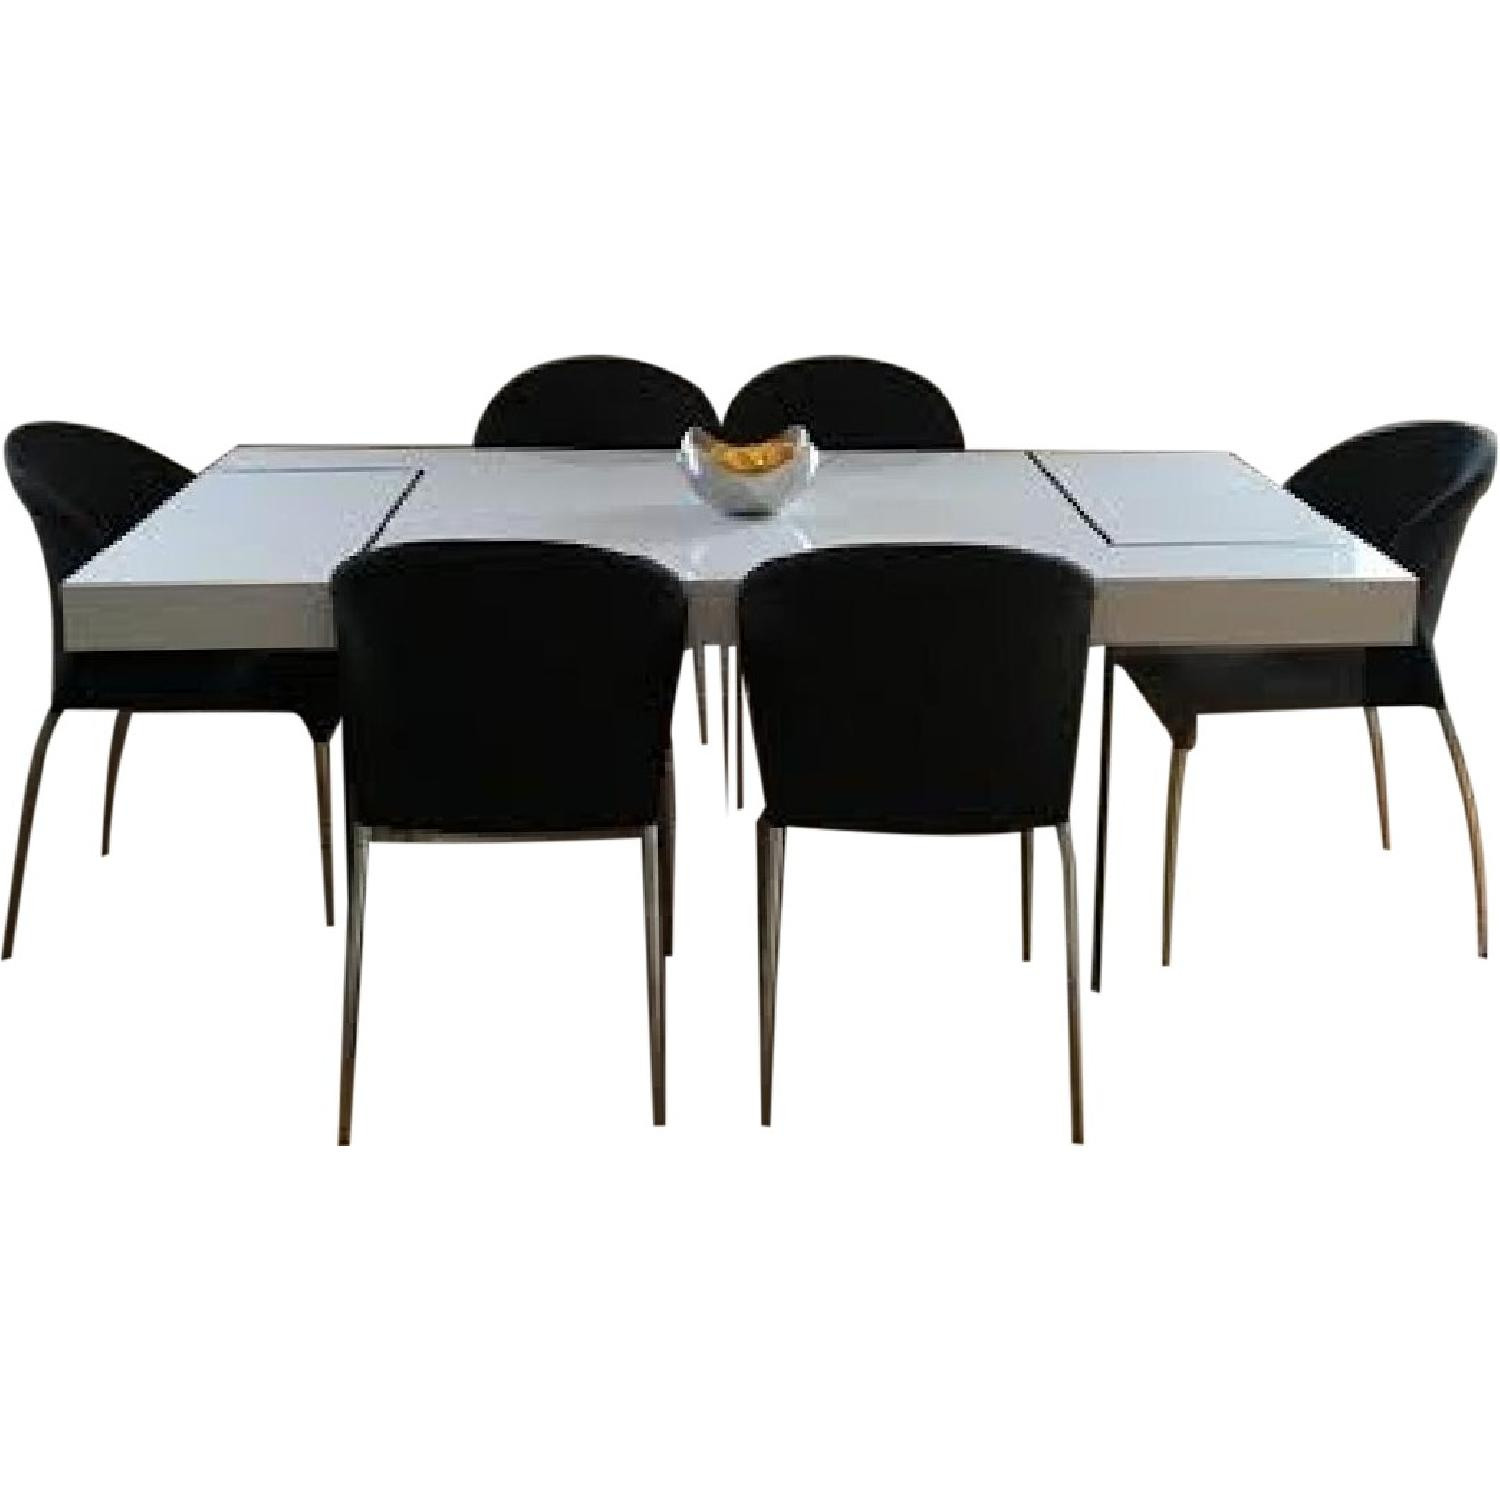 Dining Table w/ 6 Chairs - image-0